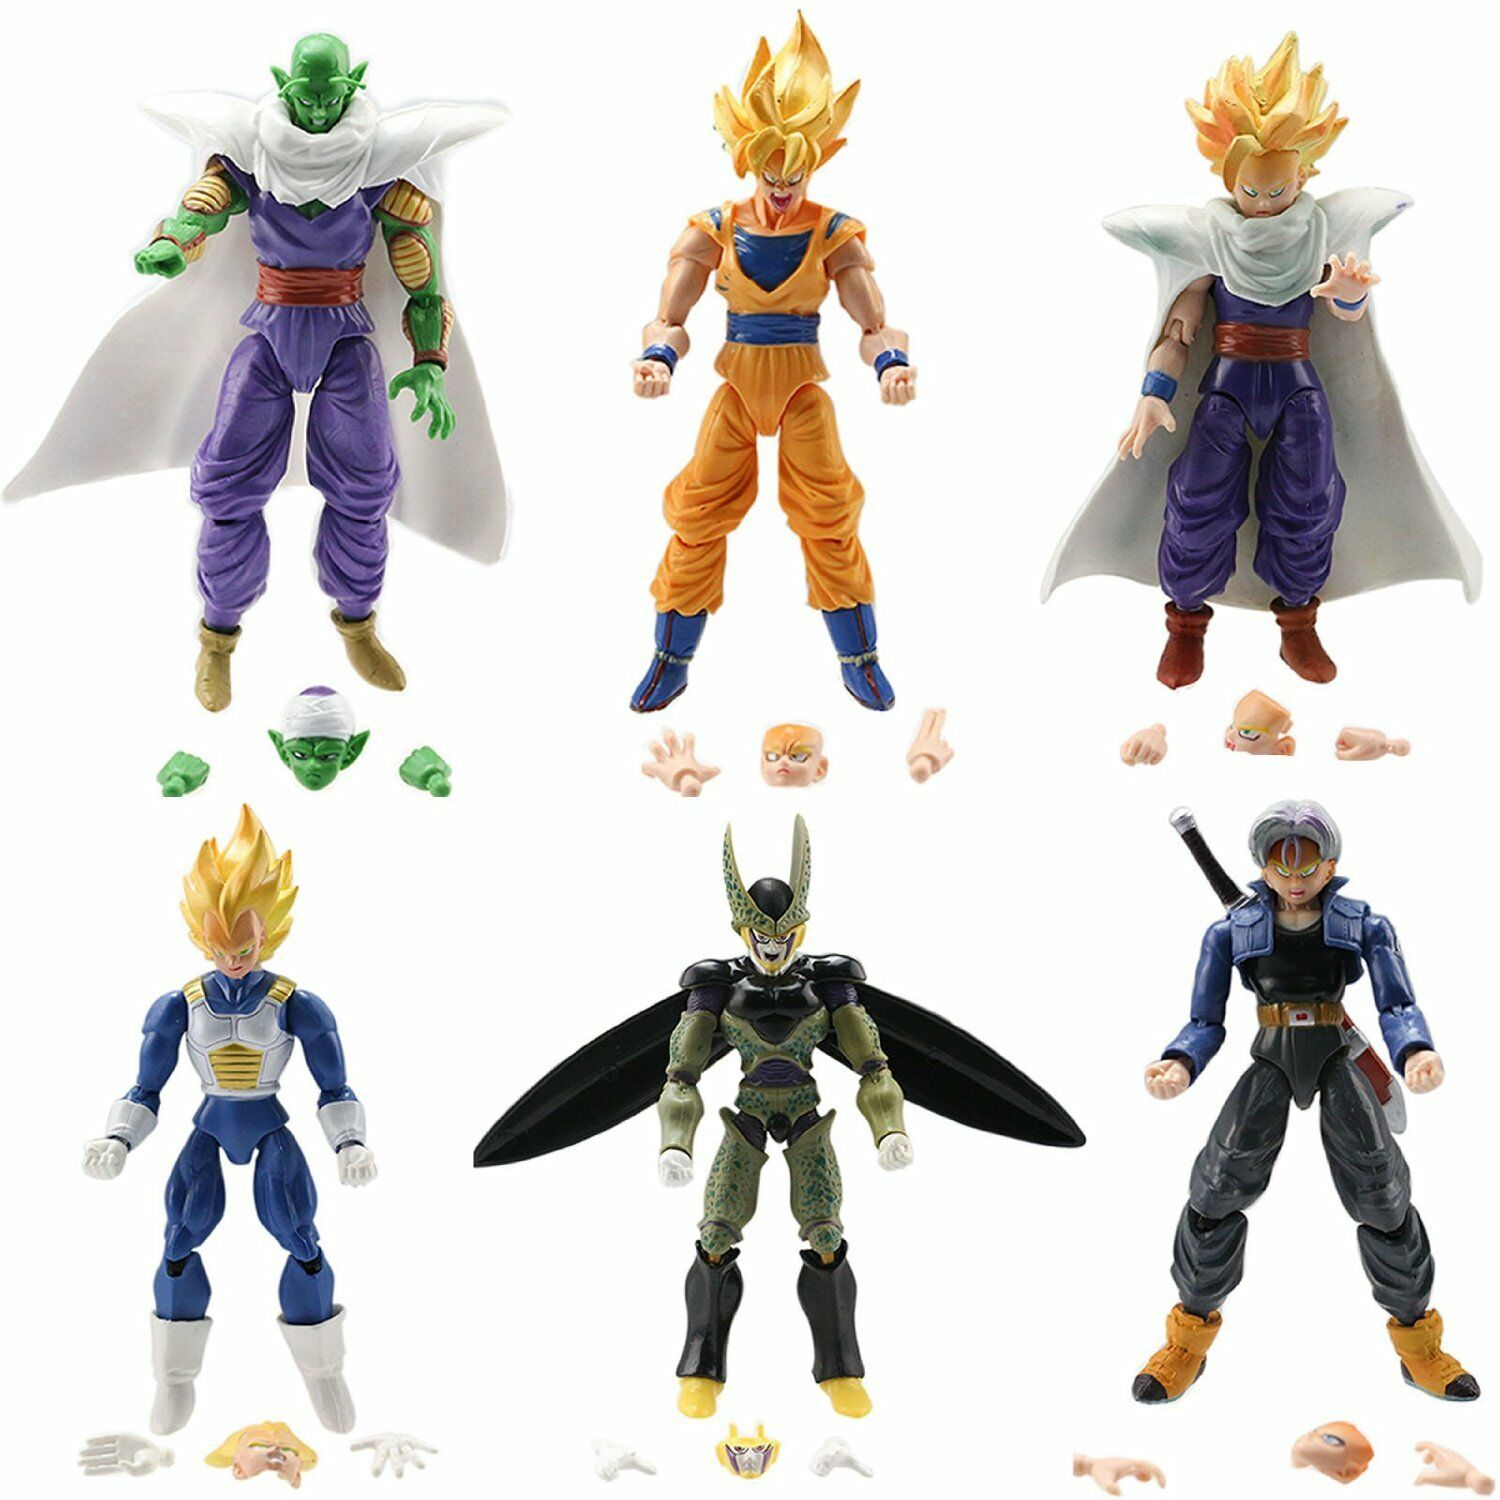 6x Dragon Ball Z 5 Quot Figures Piccolo Cell Trunks Super